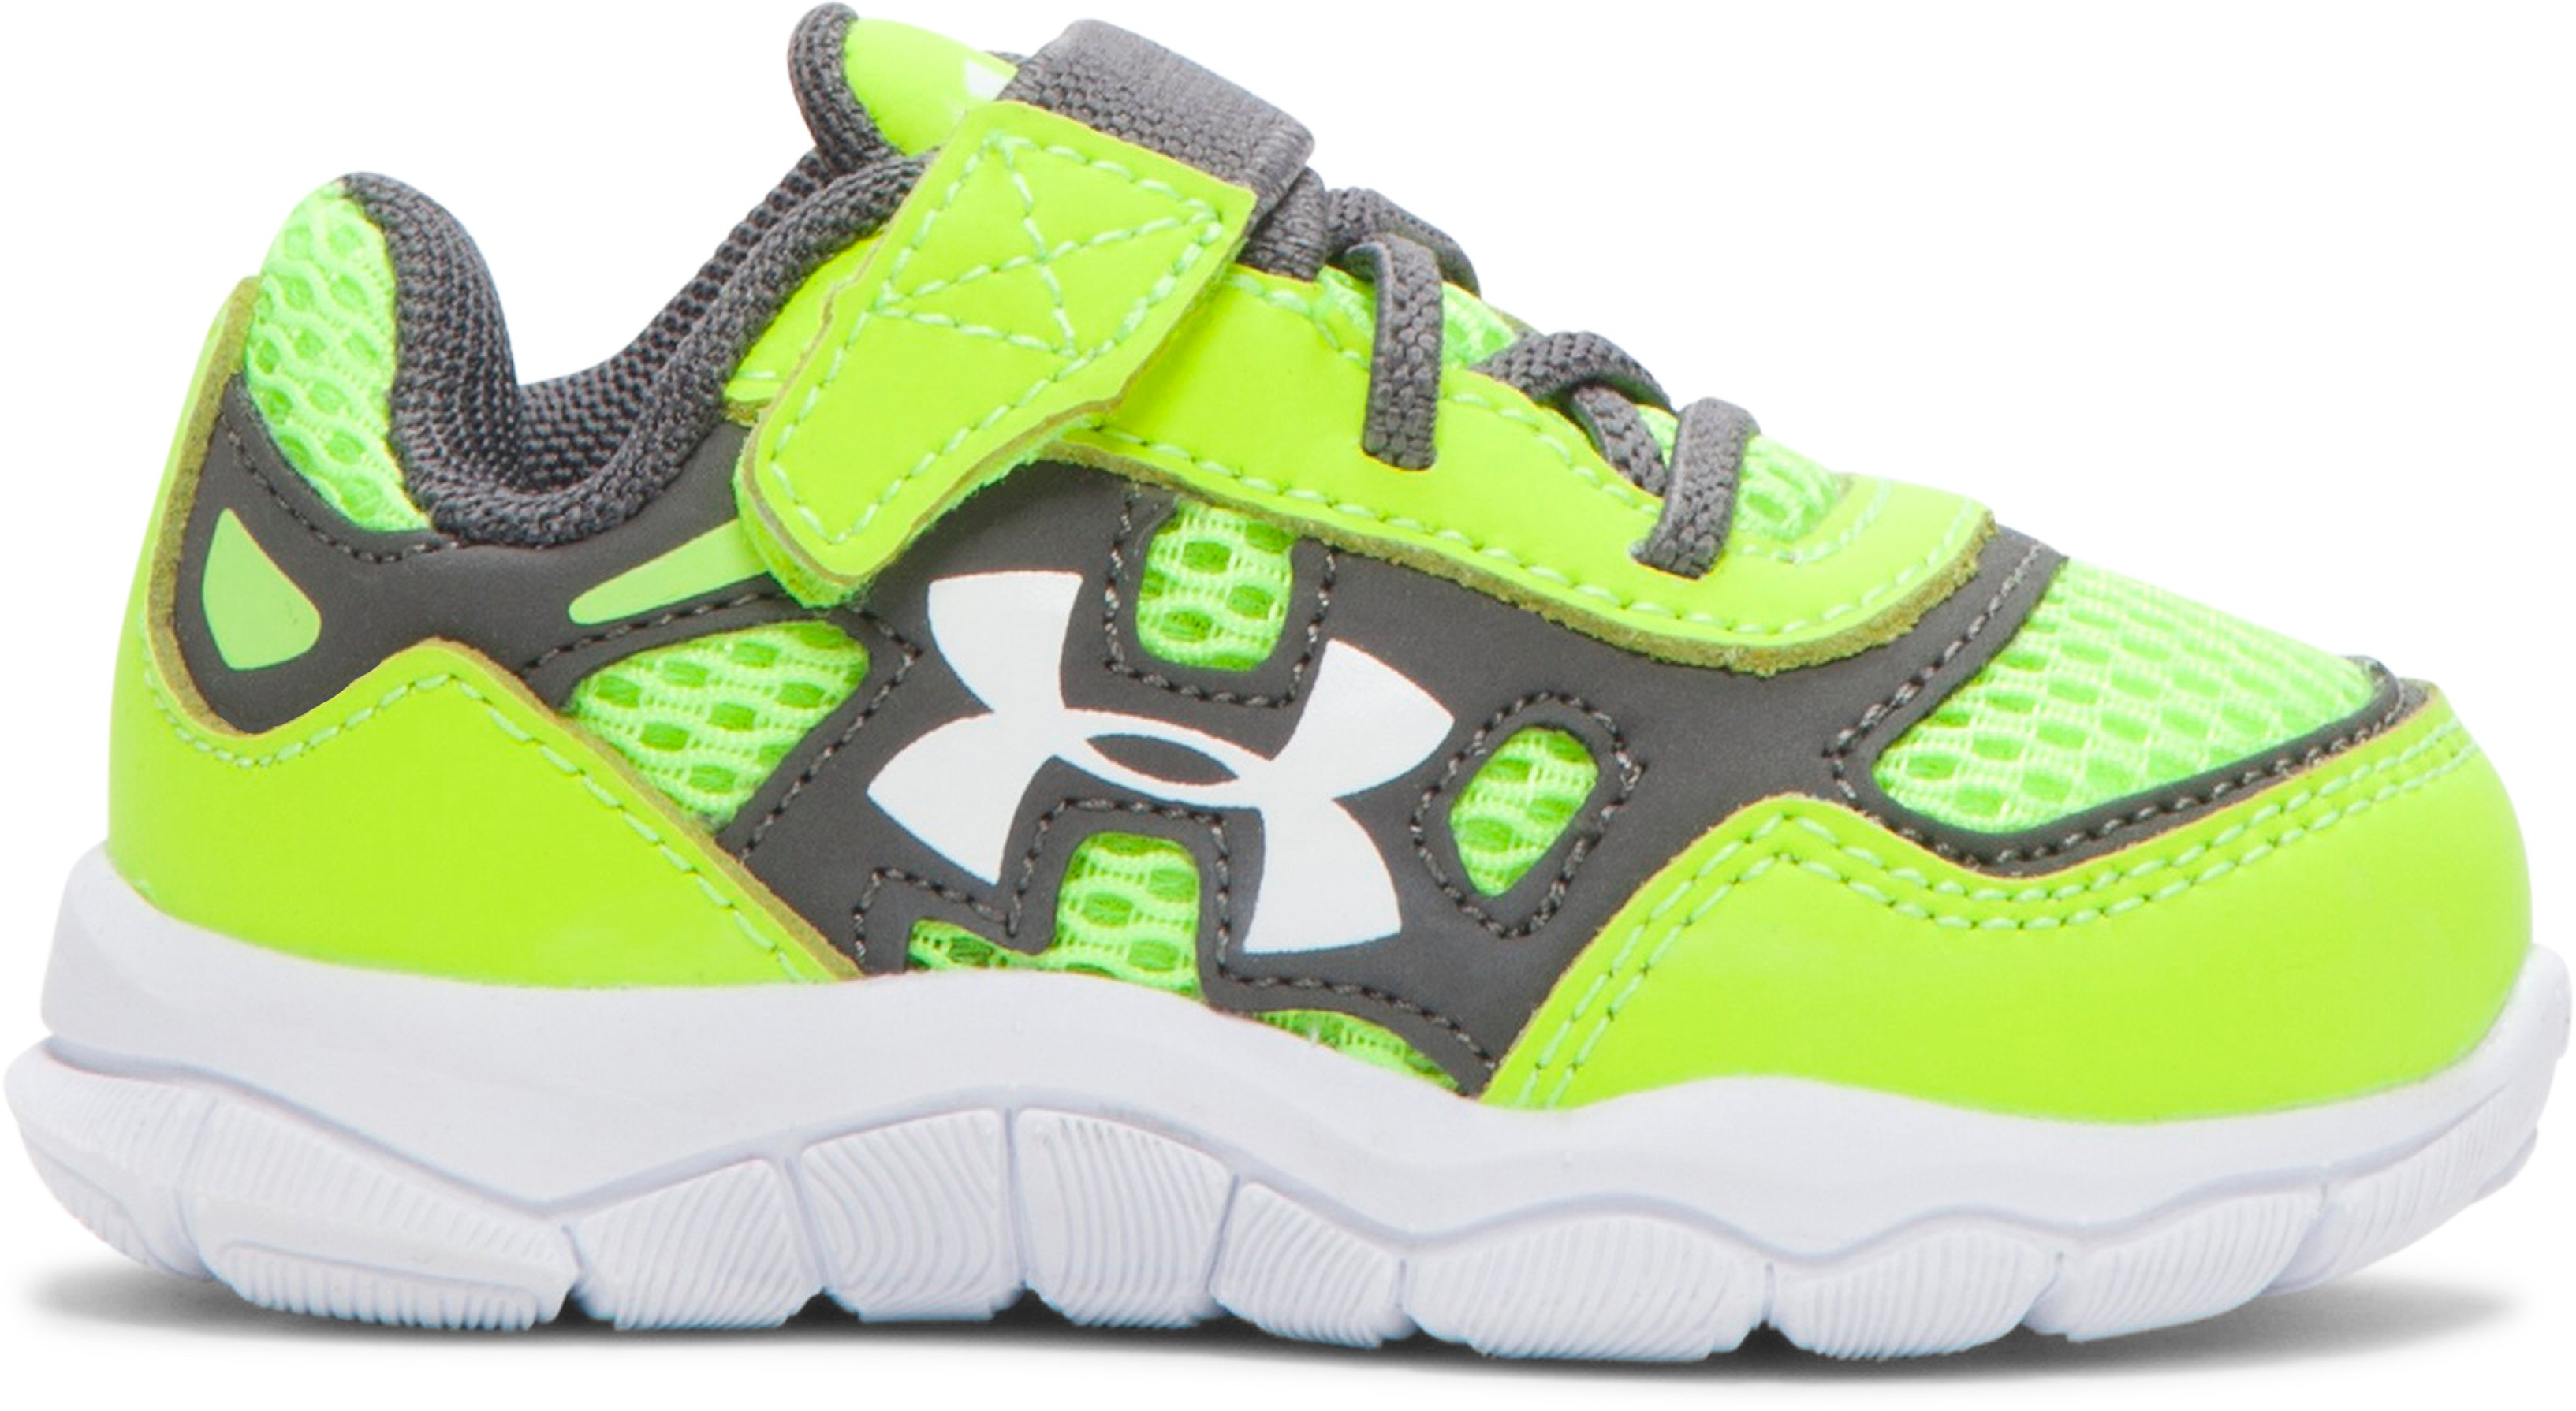 Boys' Infant UA Engage Shoes, High-Vis Yellow